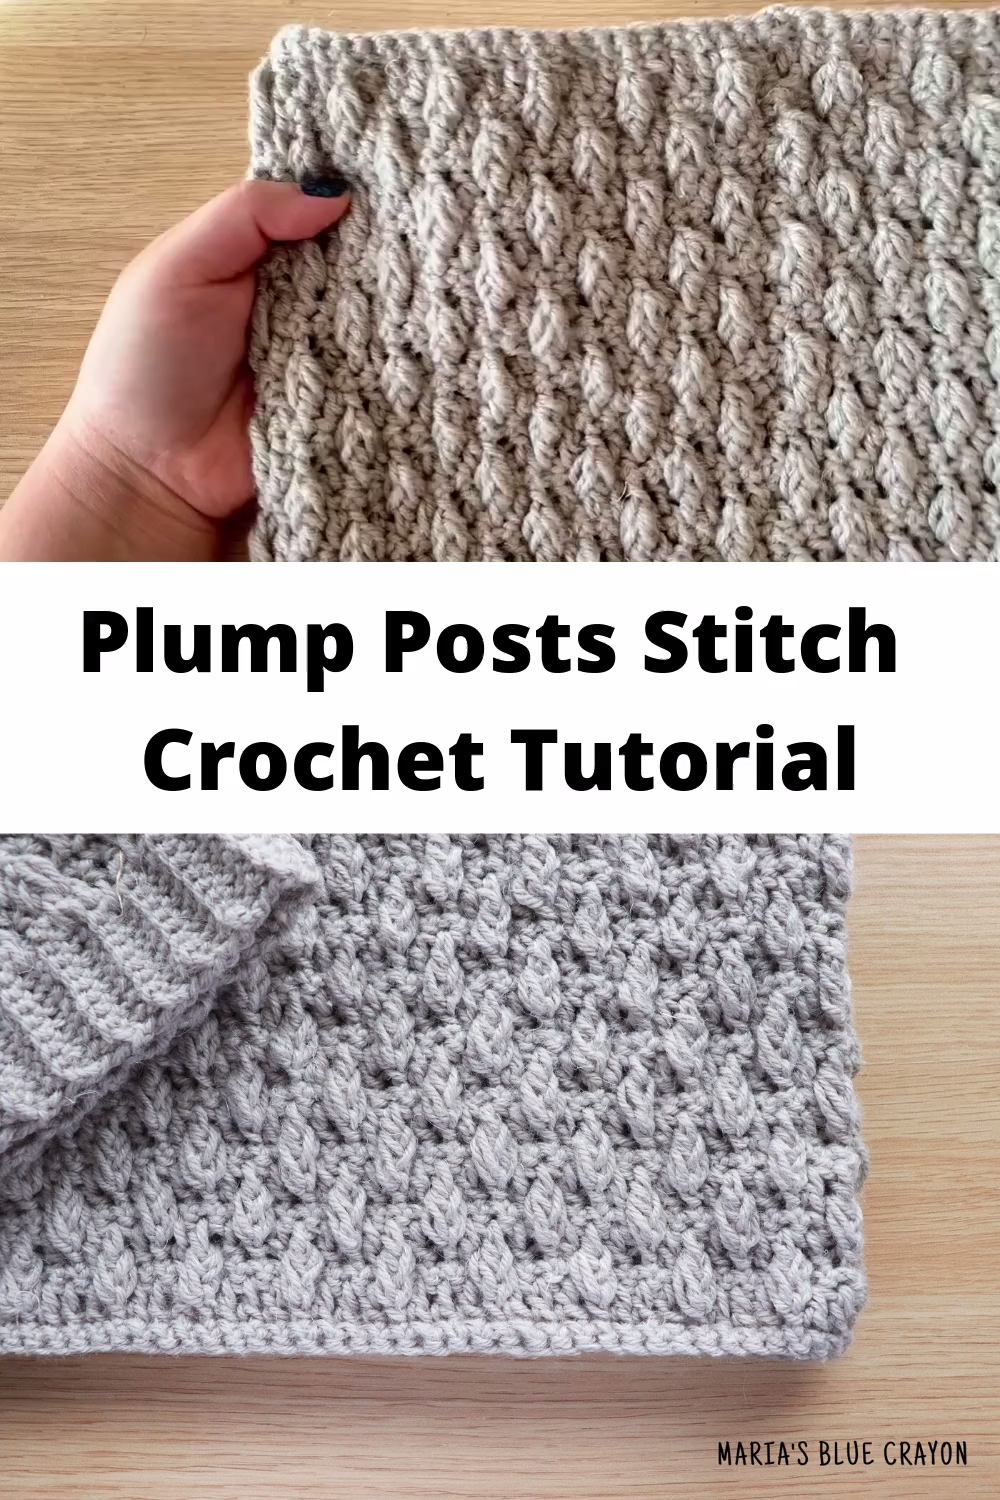 Plump Posts Crochet Stitch Tutorial